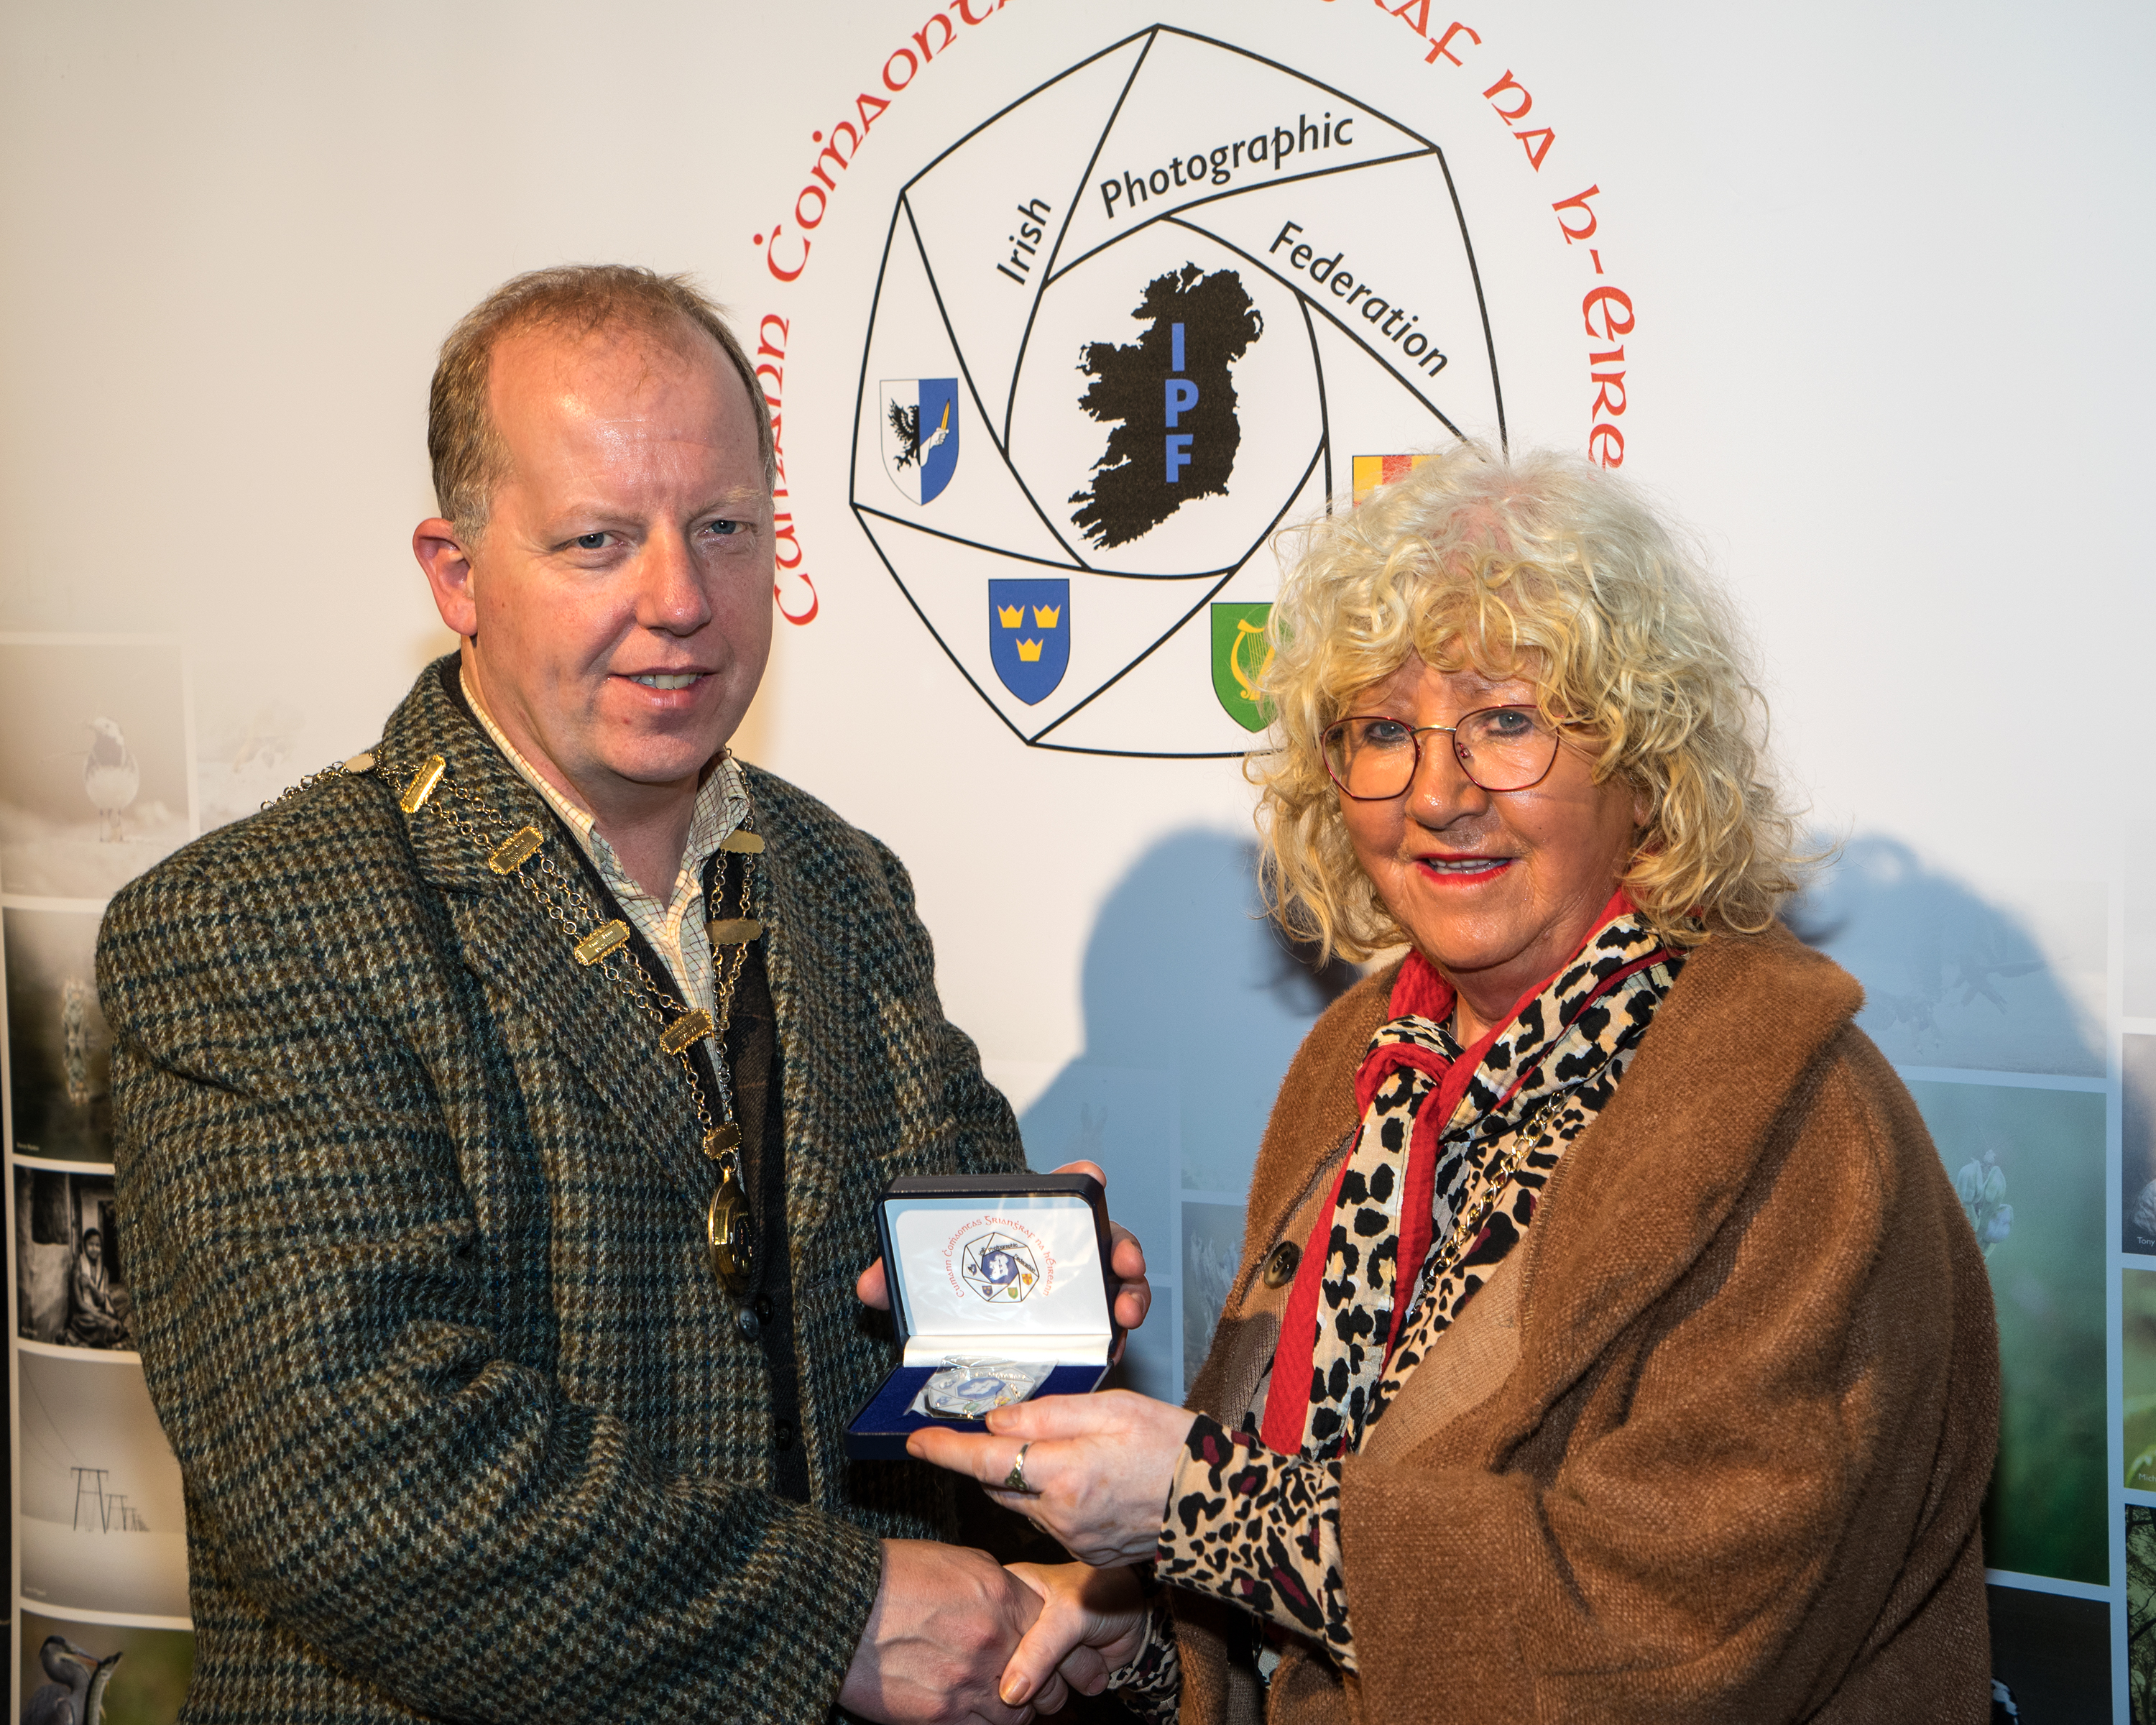 Dominic Reddin, FIPF presenting the Silver Medal to Frances Bailey for Martin Tobin